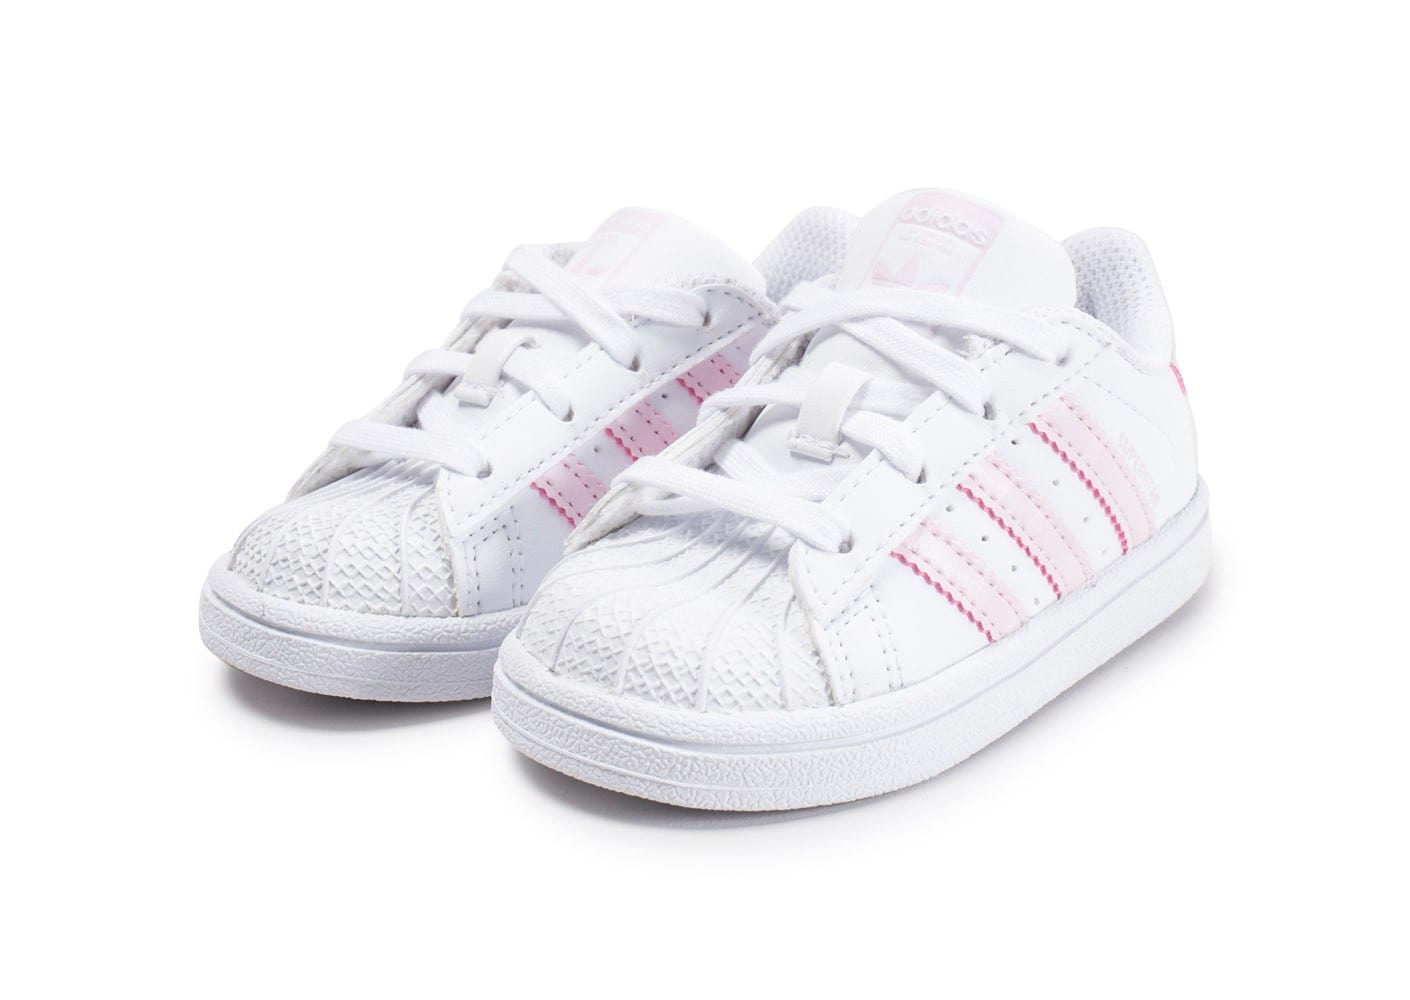 adidas superstar b b blanche et rose poudr chaussures adidas chausport. Black Bedroom Furniture Sets. Home Design Ideas